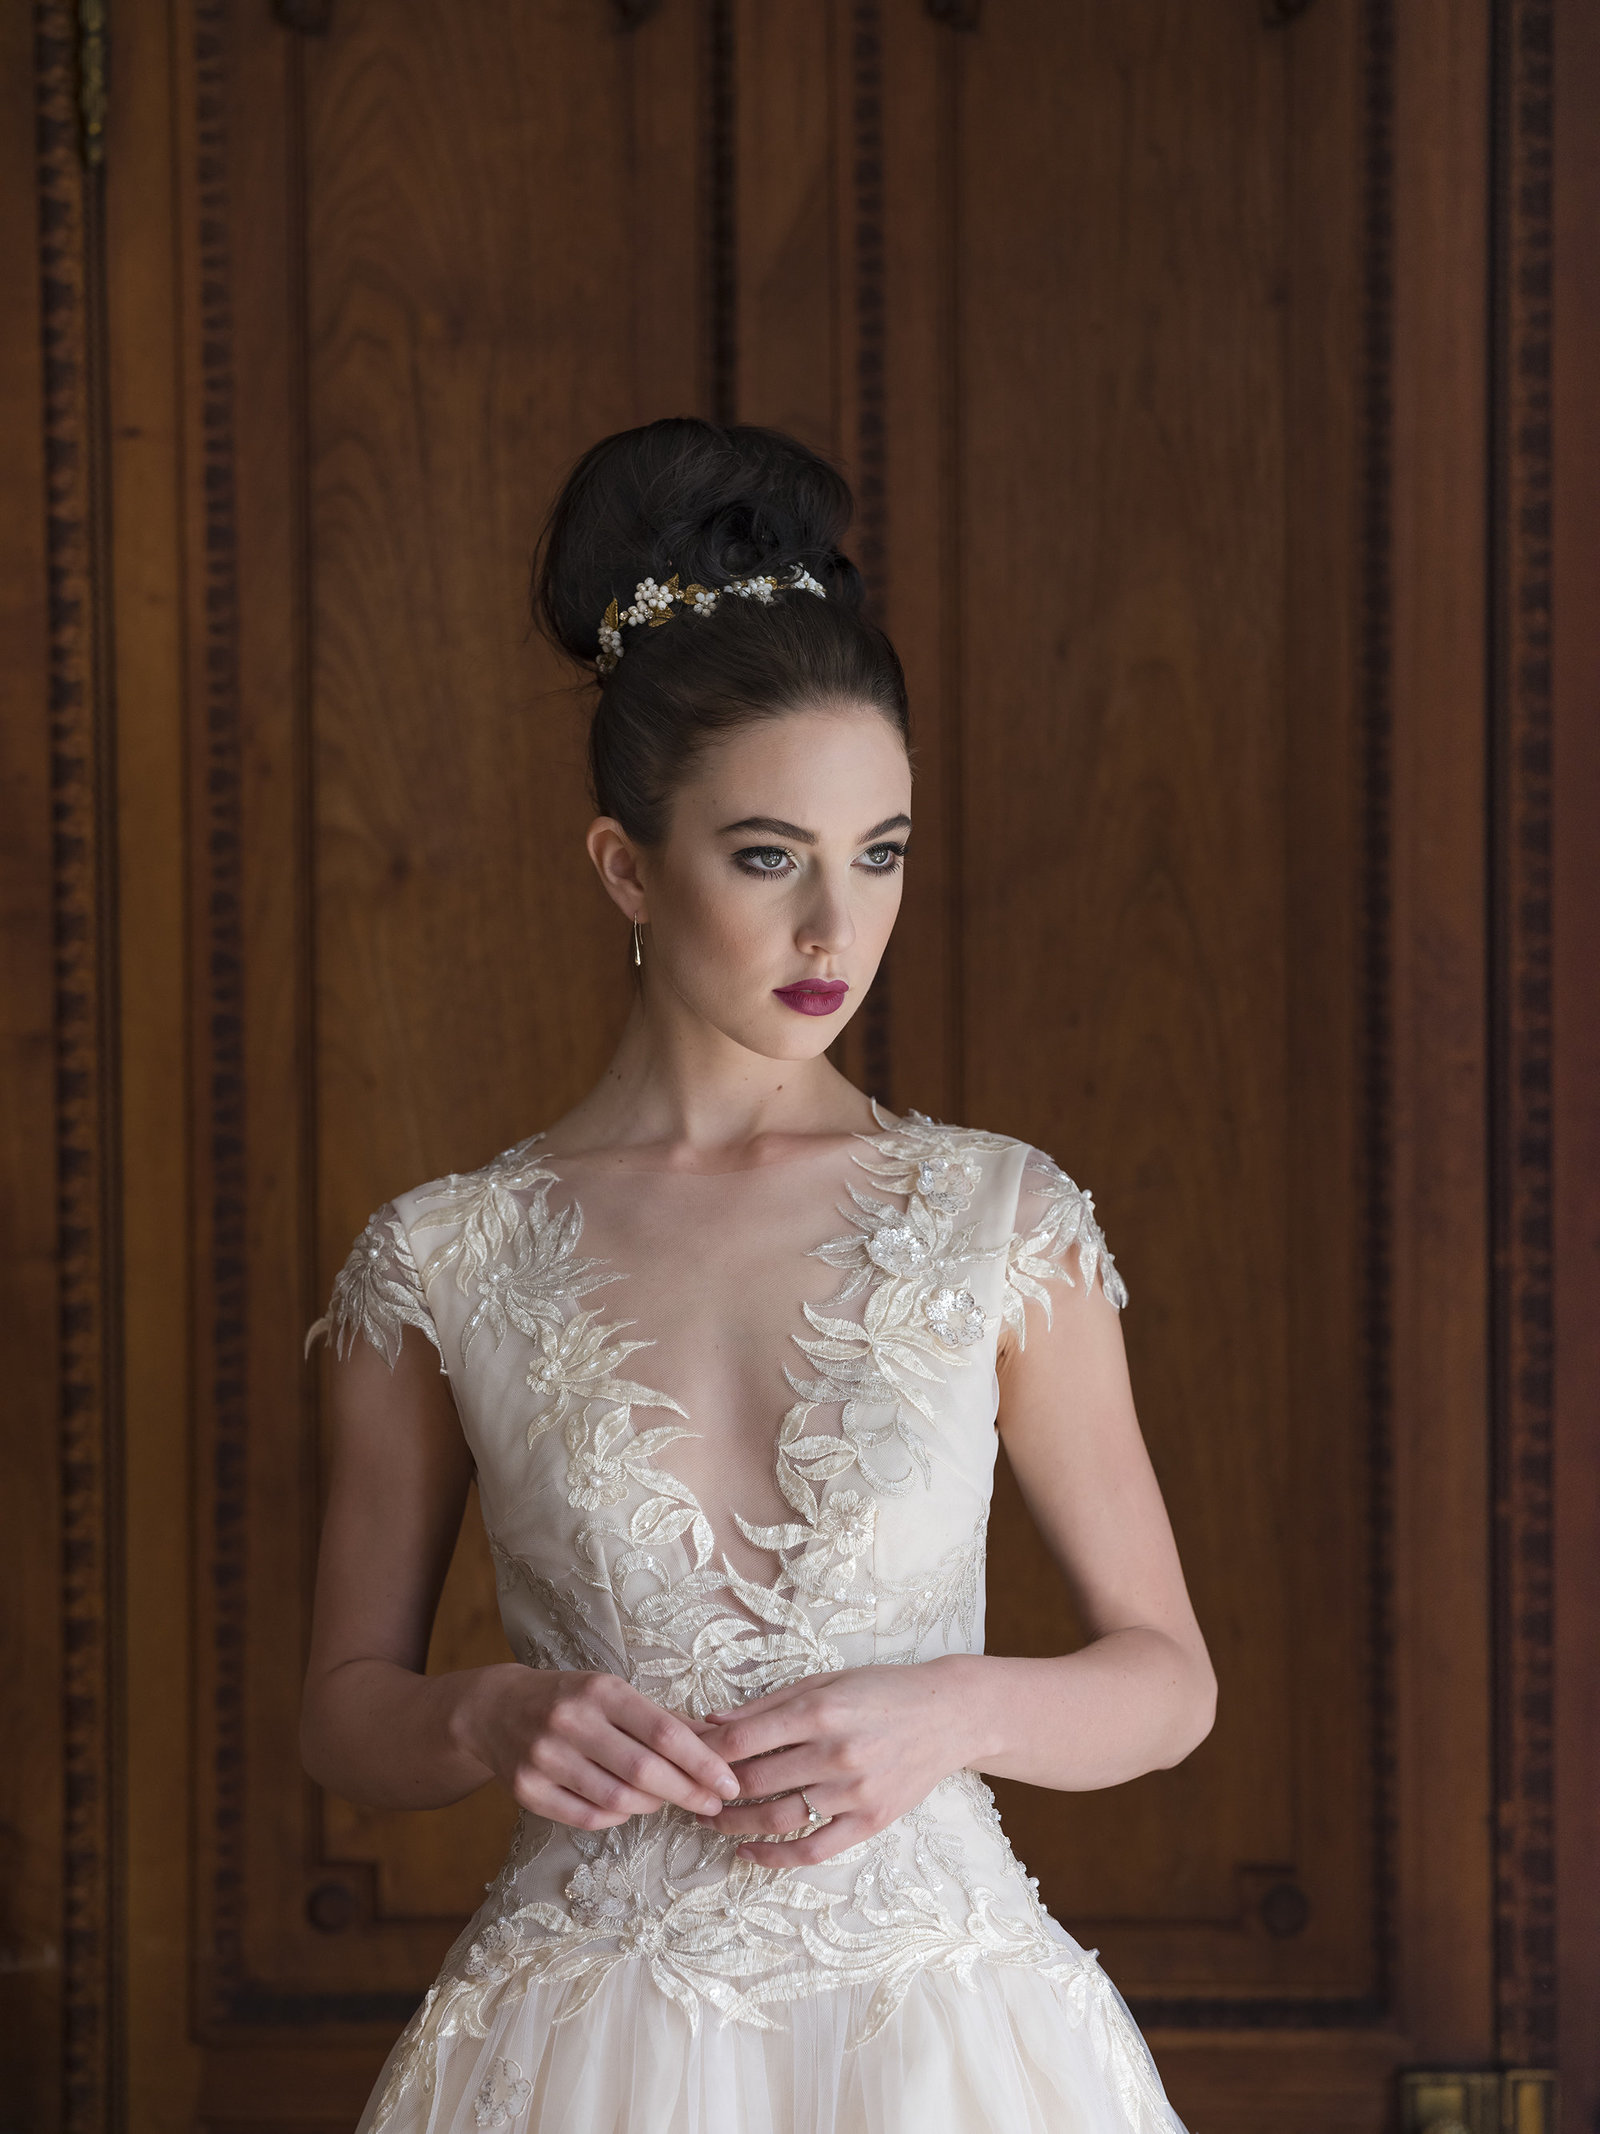 Eos_blush_silver_embroidered_silk_wedding_dress_JoanneFlemingDesign_DavidStanburyPhoto (6)